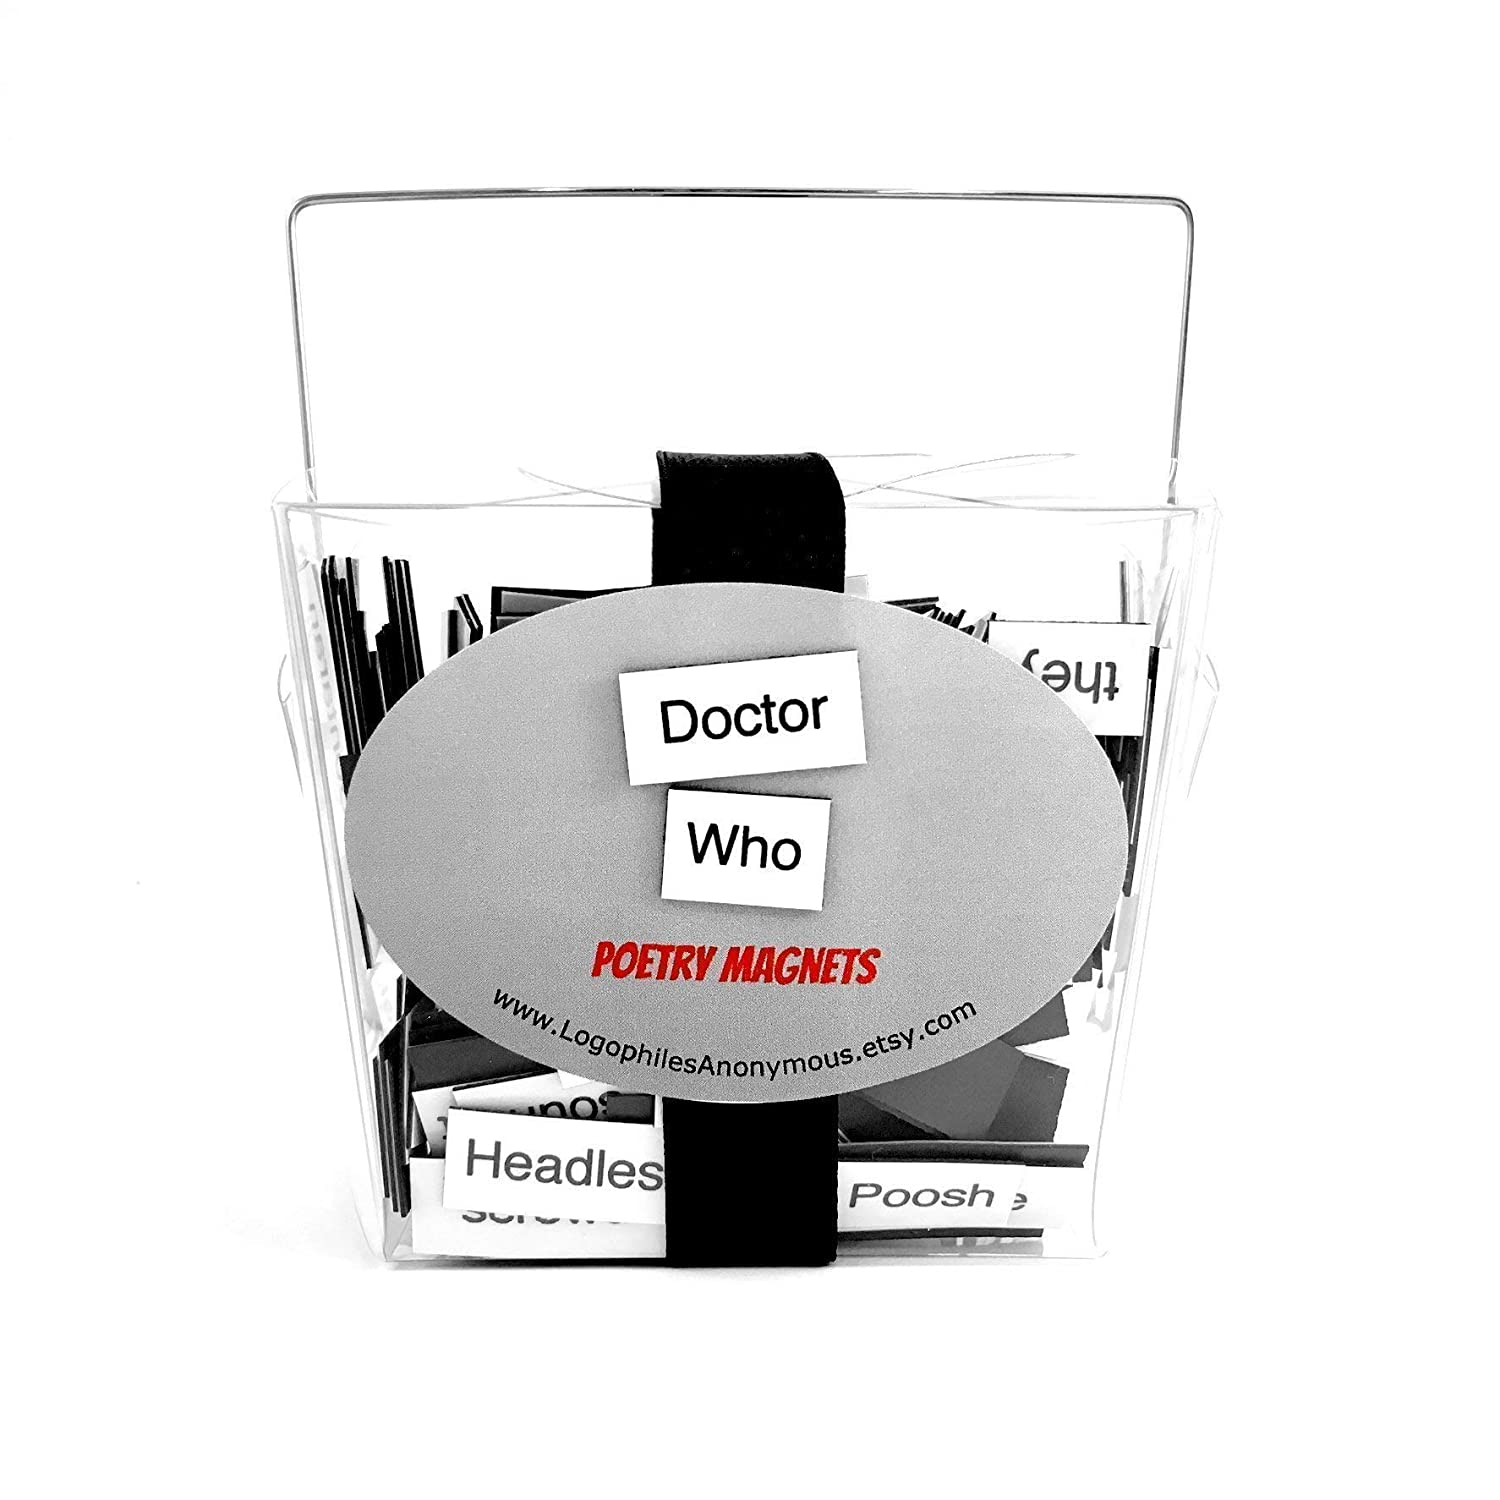 Doctor Who El Paso Mall Poetry Magnets Magnet Ranking TOP11 Gifts Fridge